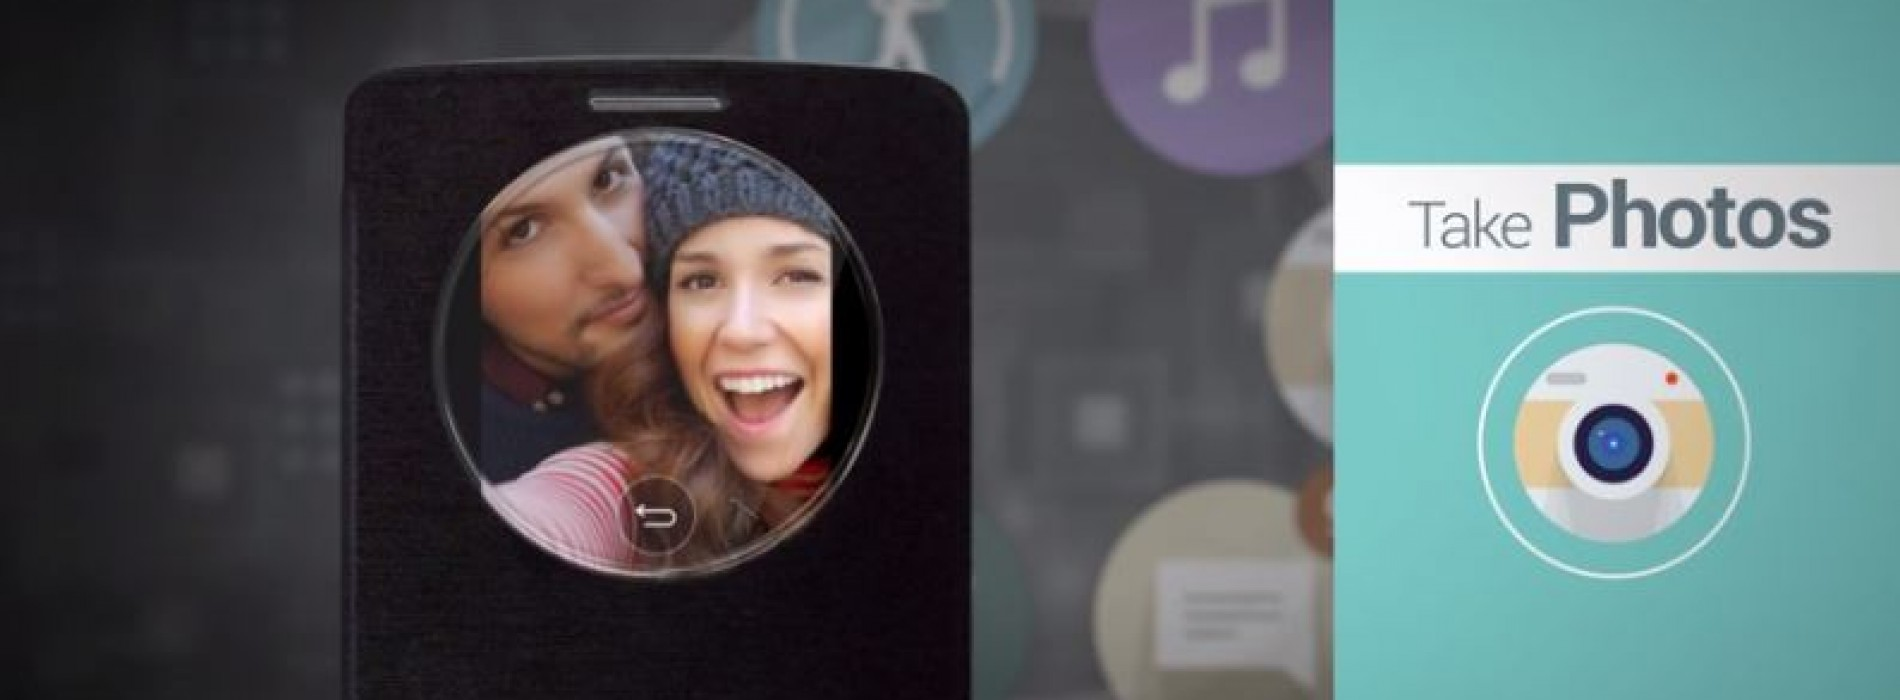 LG G3 Quick Circle Case video introduced ahead of launch